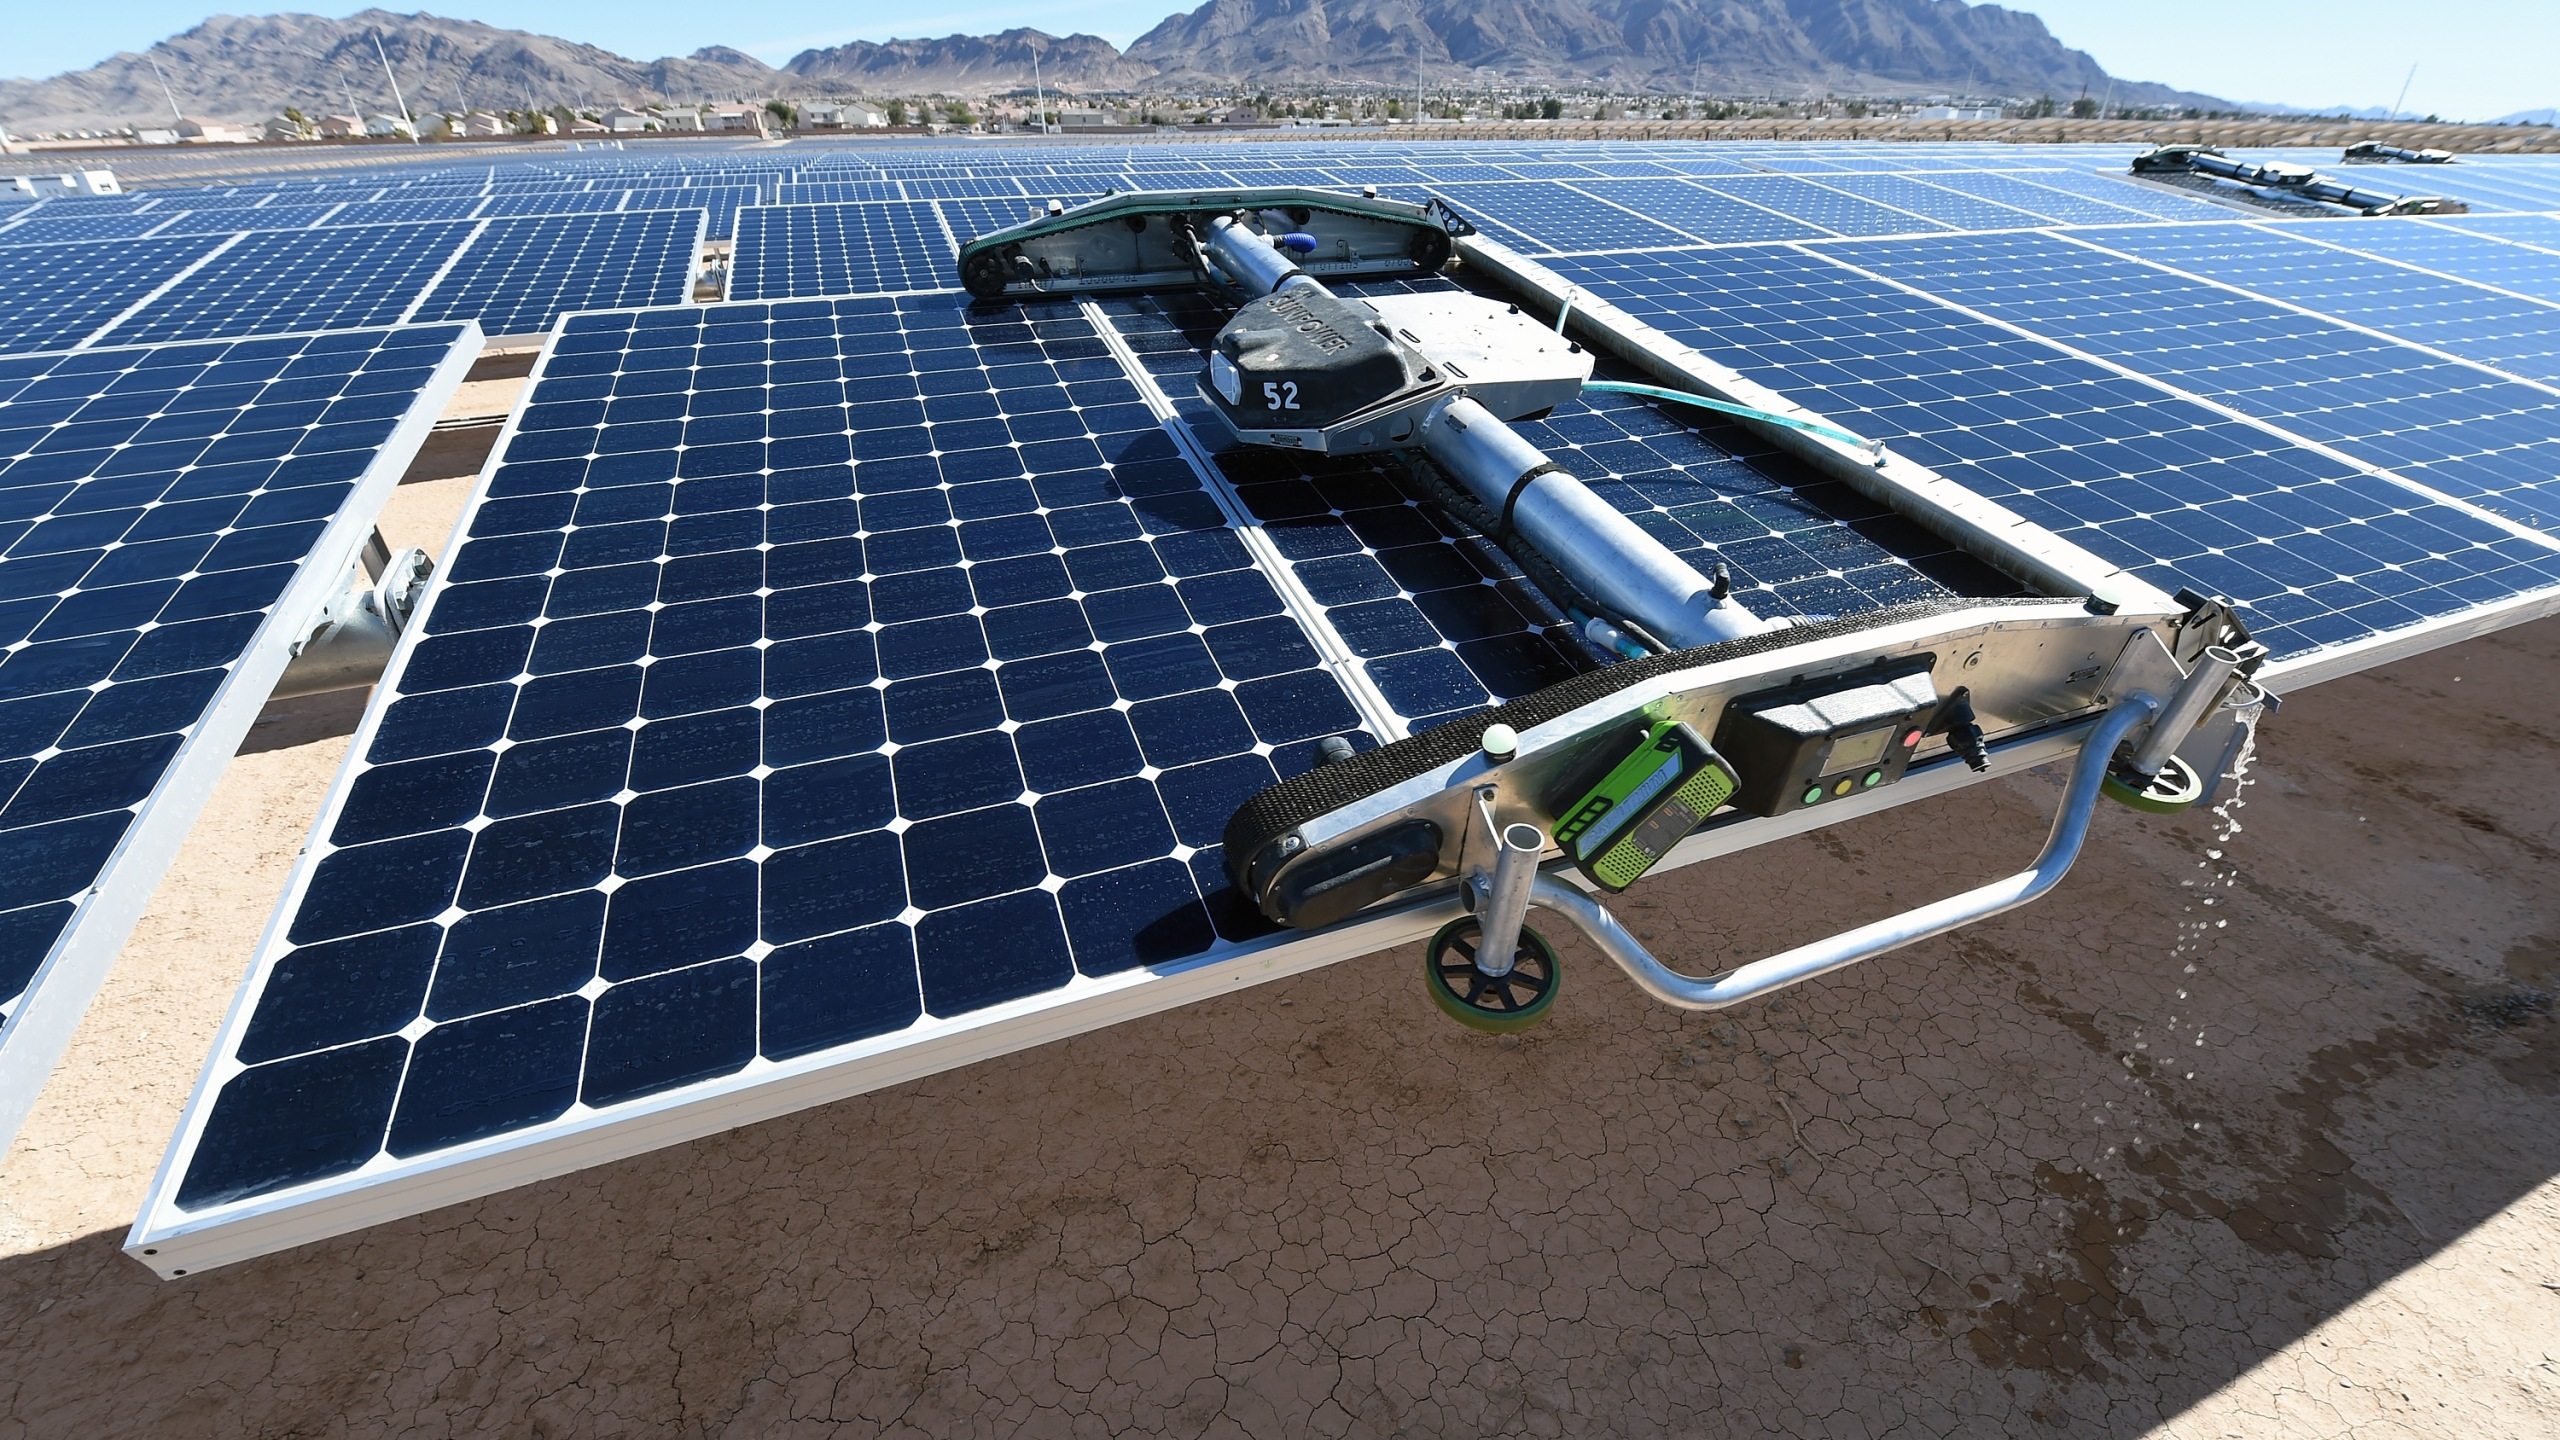 A panel-washing robot cleans a row of solar panels during a dedication ceremony to commemorate the completion of the 102-acre, 15-megawatt Solar Array II Generating Station at Nellis Air Force Base on Feb. 16, 2016, in Las Vegas, Nevada. (Credit: Ethan Miller/Getty Images)